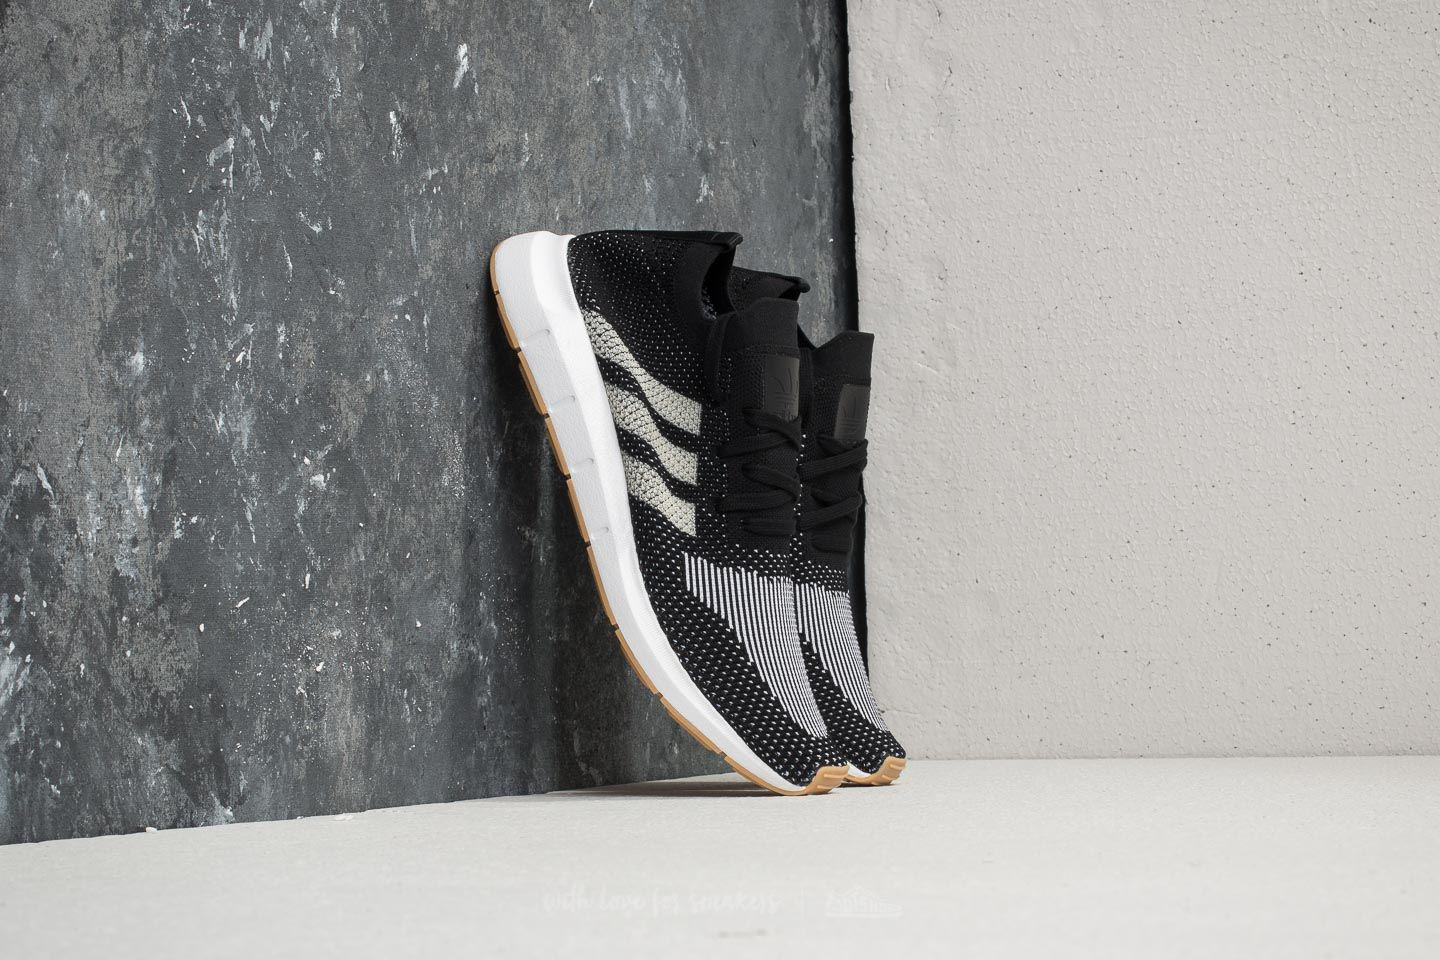 adidas Adidas Swift Run Primeknit Core / Off White/ Ftw White pT3GmJF8T